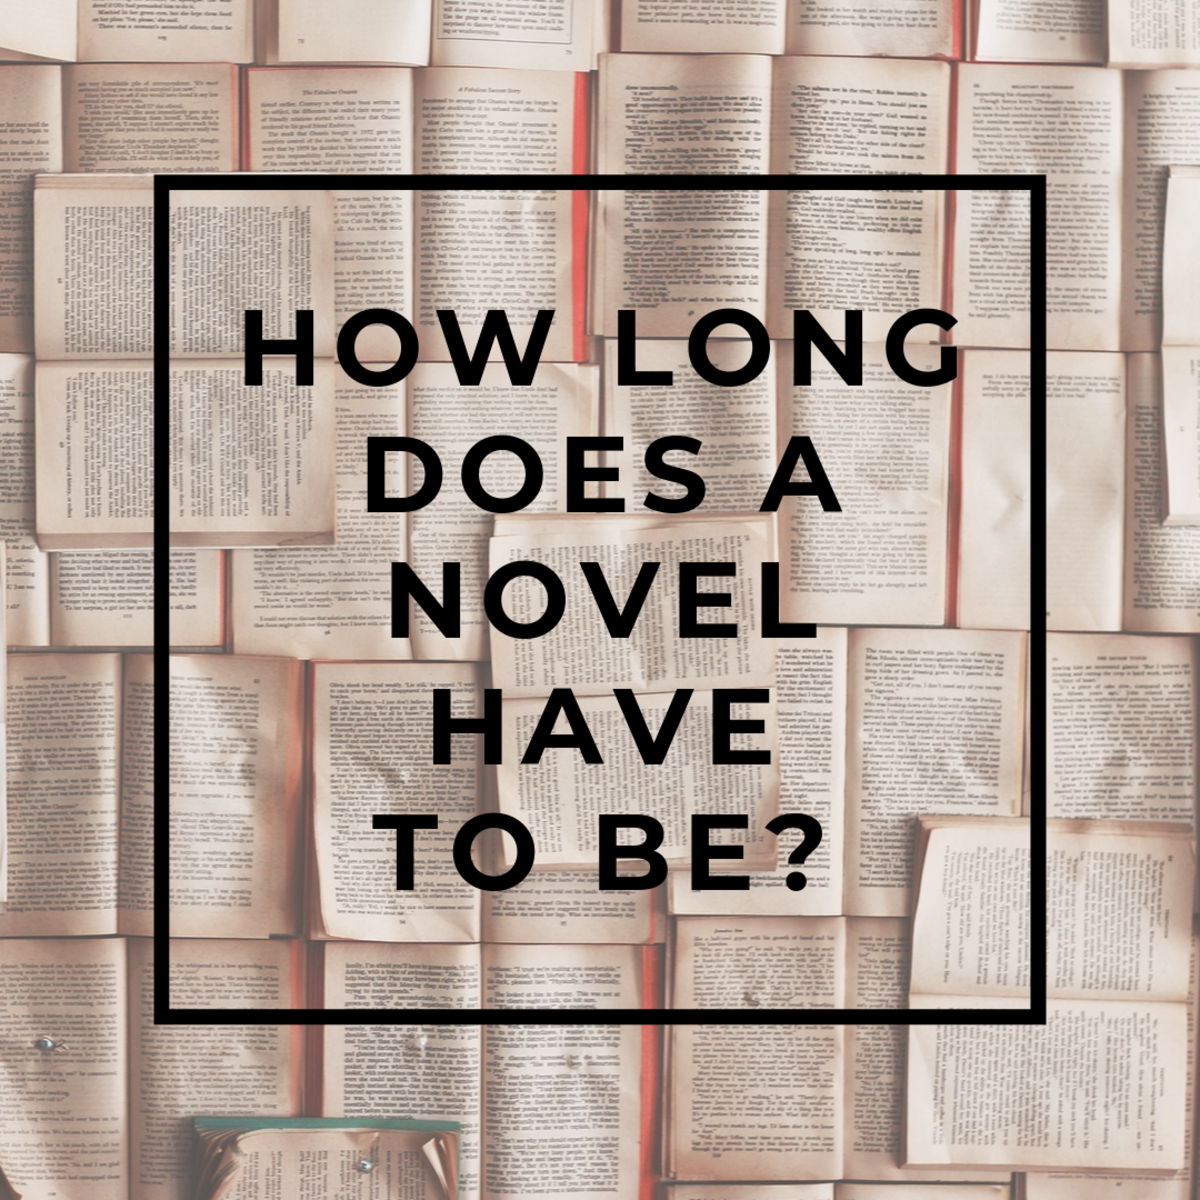 How Long Does a Novel Have to Be?